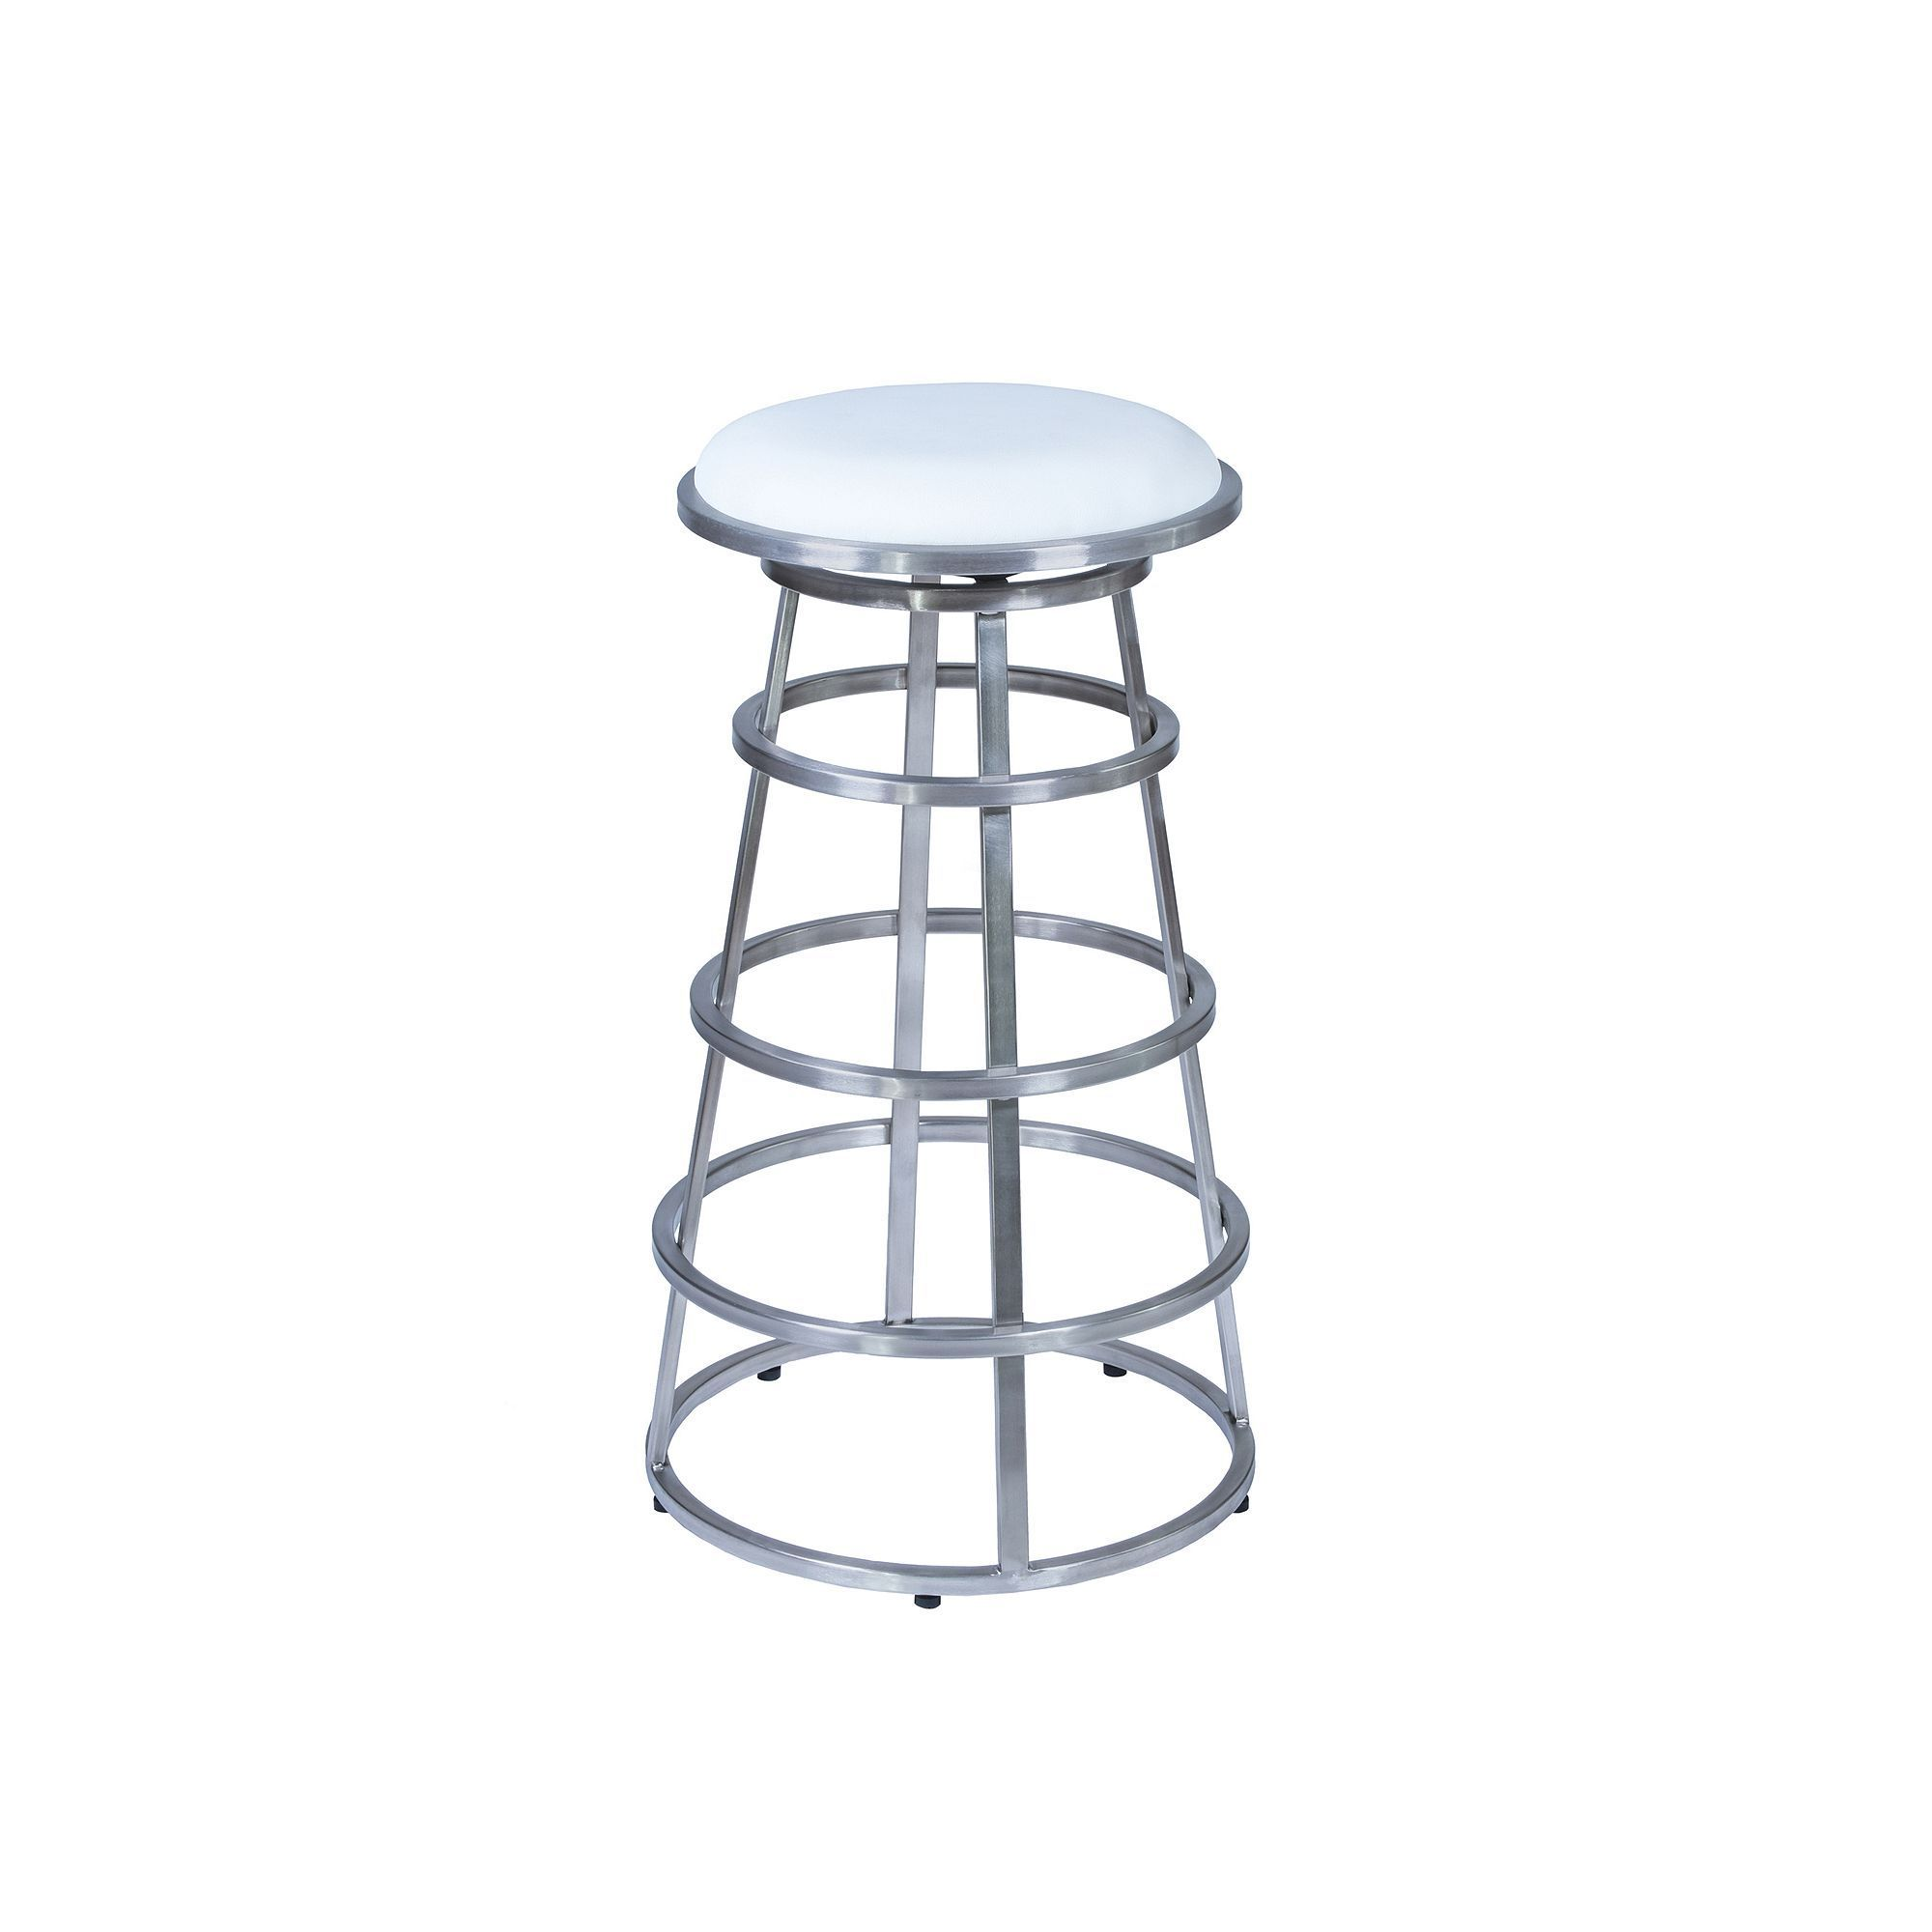 Armen Living Ringo Bar Stool, White